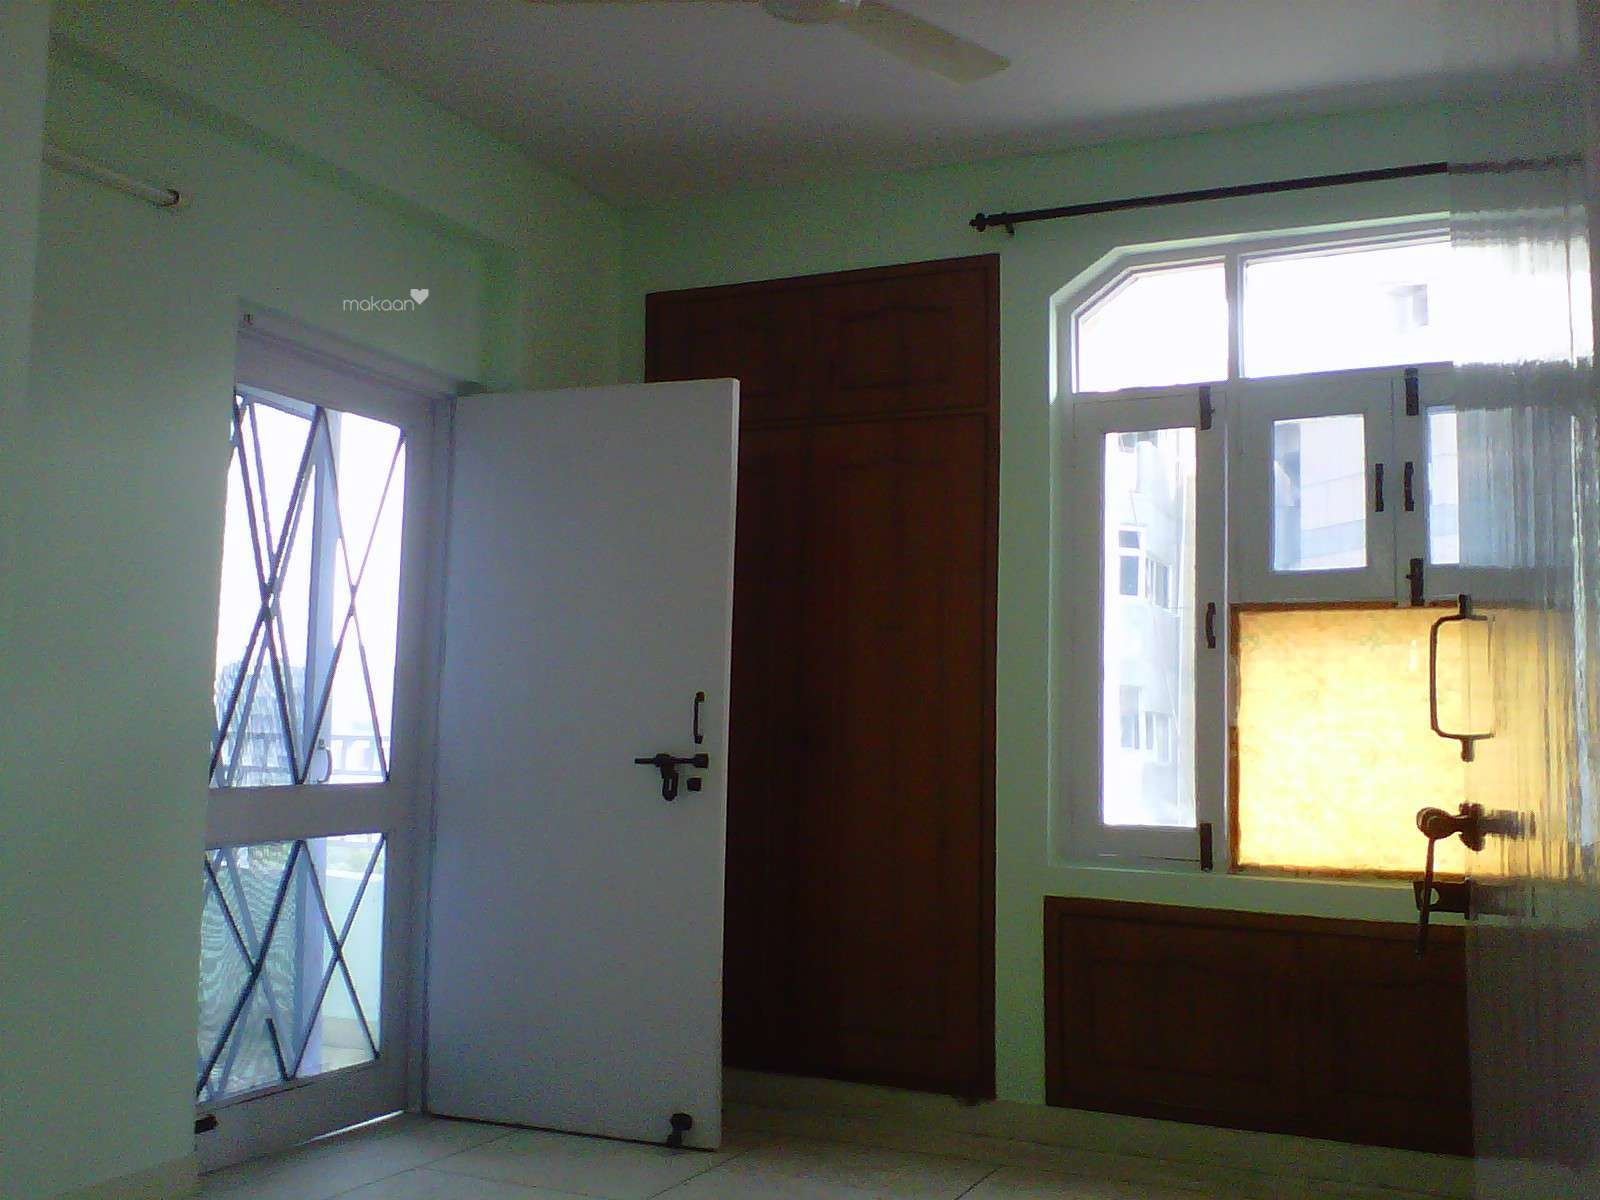 1800 sq ft 3BHK 3BHK+2T (1,800 sq ft) + Store Room Property By sinha real estate In Project, Sector 4 Dwarka